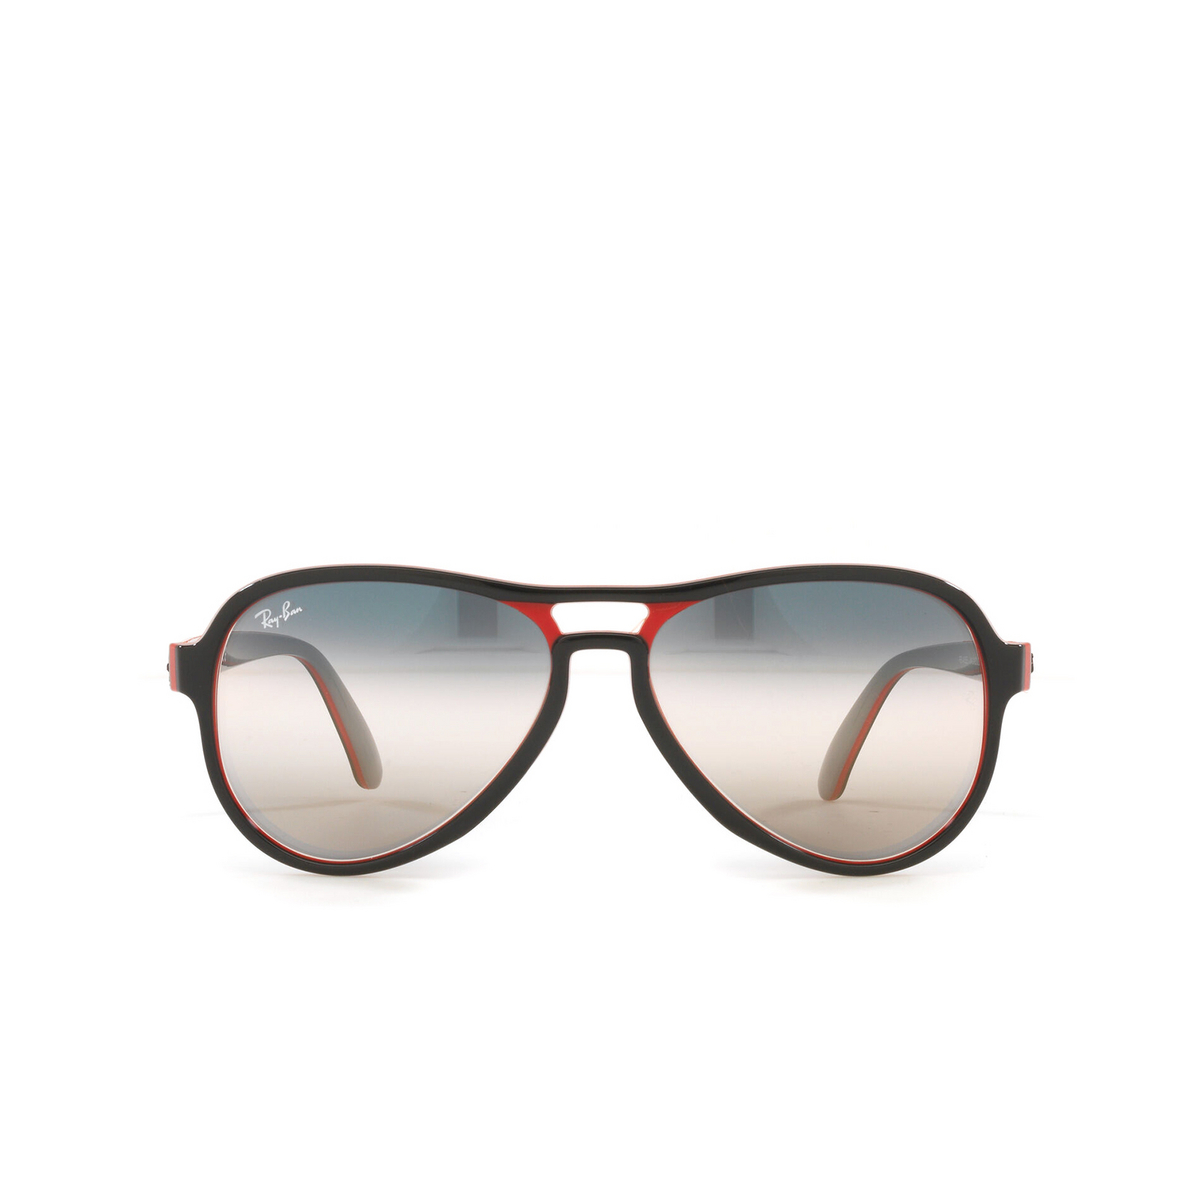 Ray-Ban® Aviator Sunglasses: Vagabond RB4355 color Black Red Light Grey 6549GE - front view.